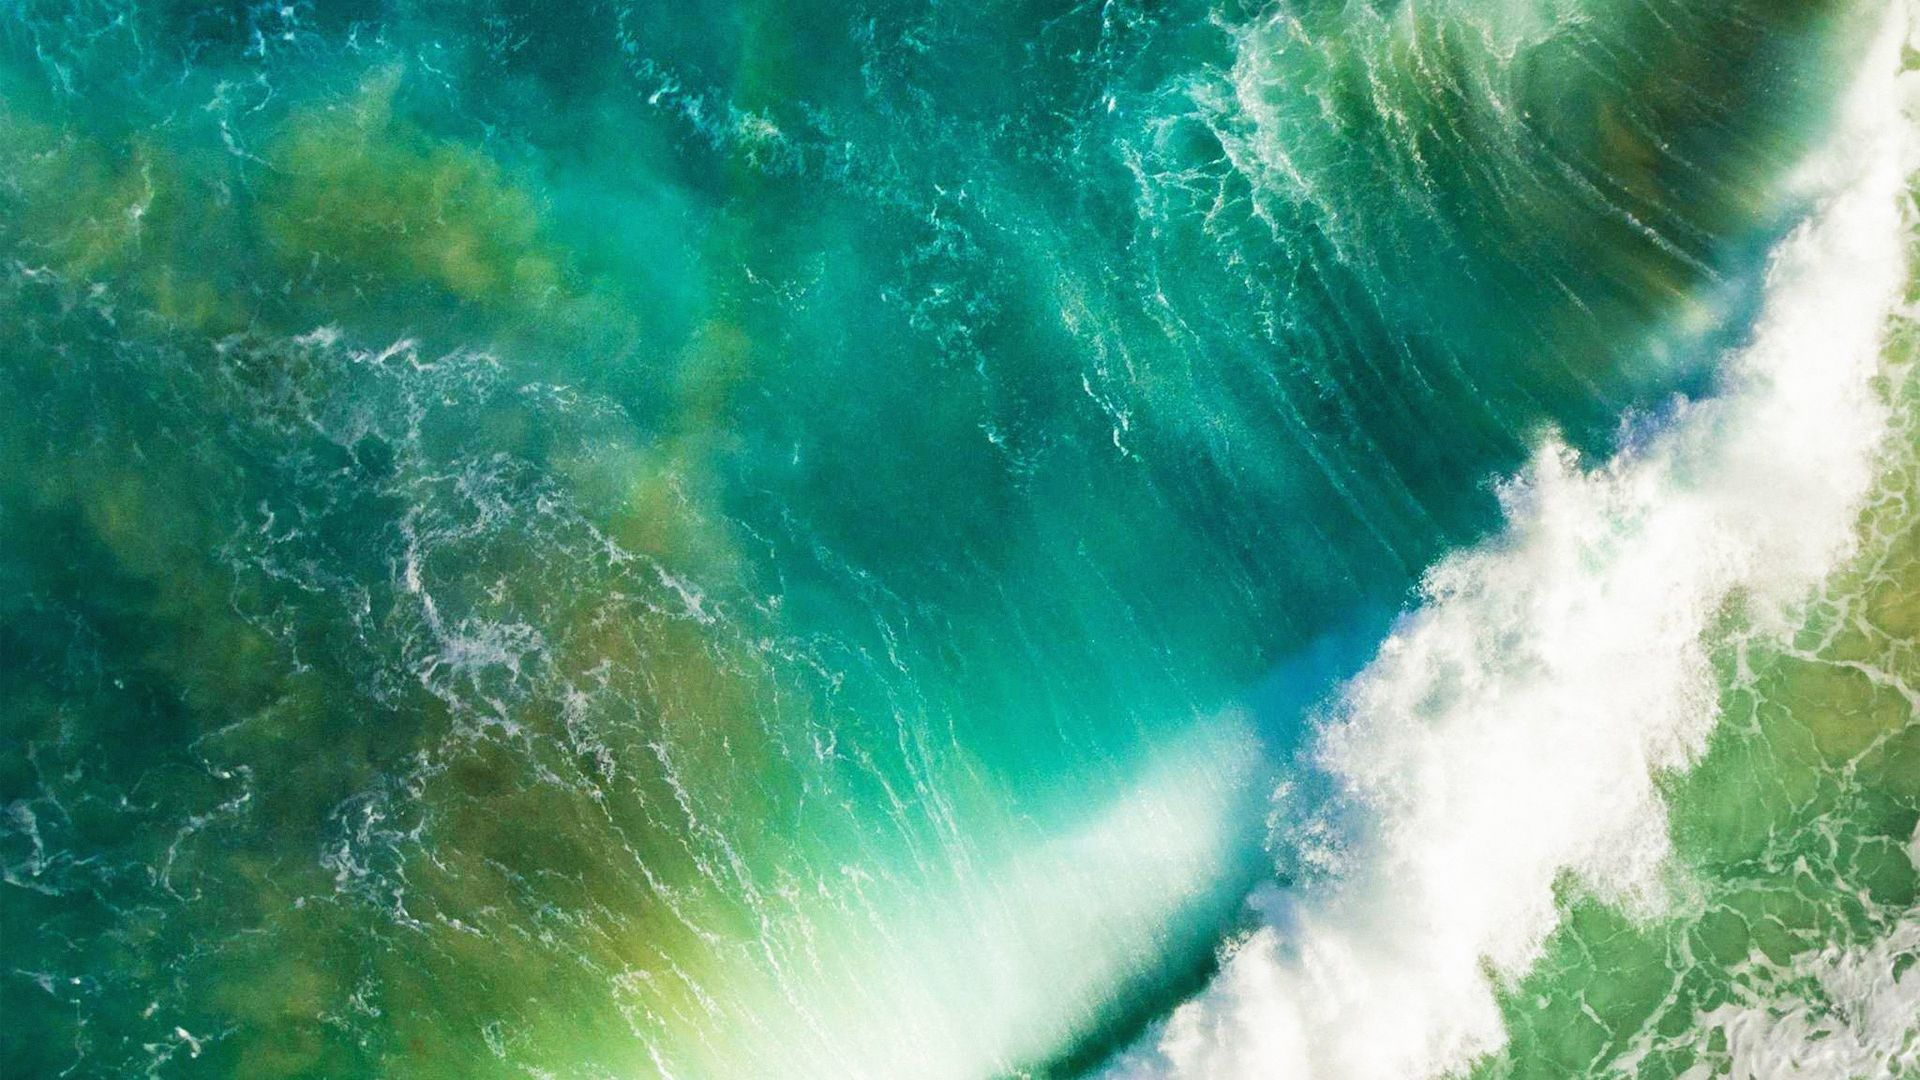 Apple, iOS 10, 4k, 5k, iphone wallpaper, live wallpaper, live photo, wave, macOS Sierra (horizontal)